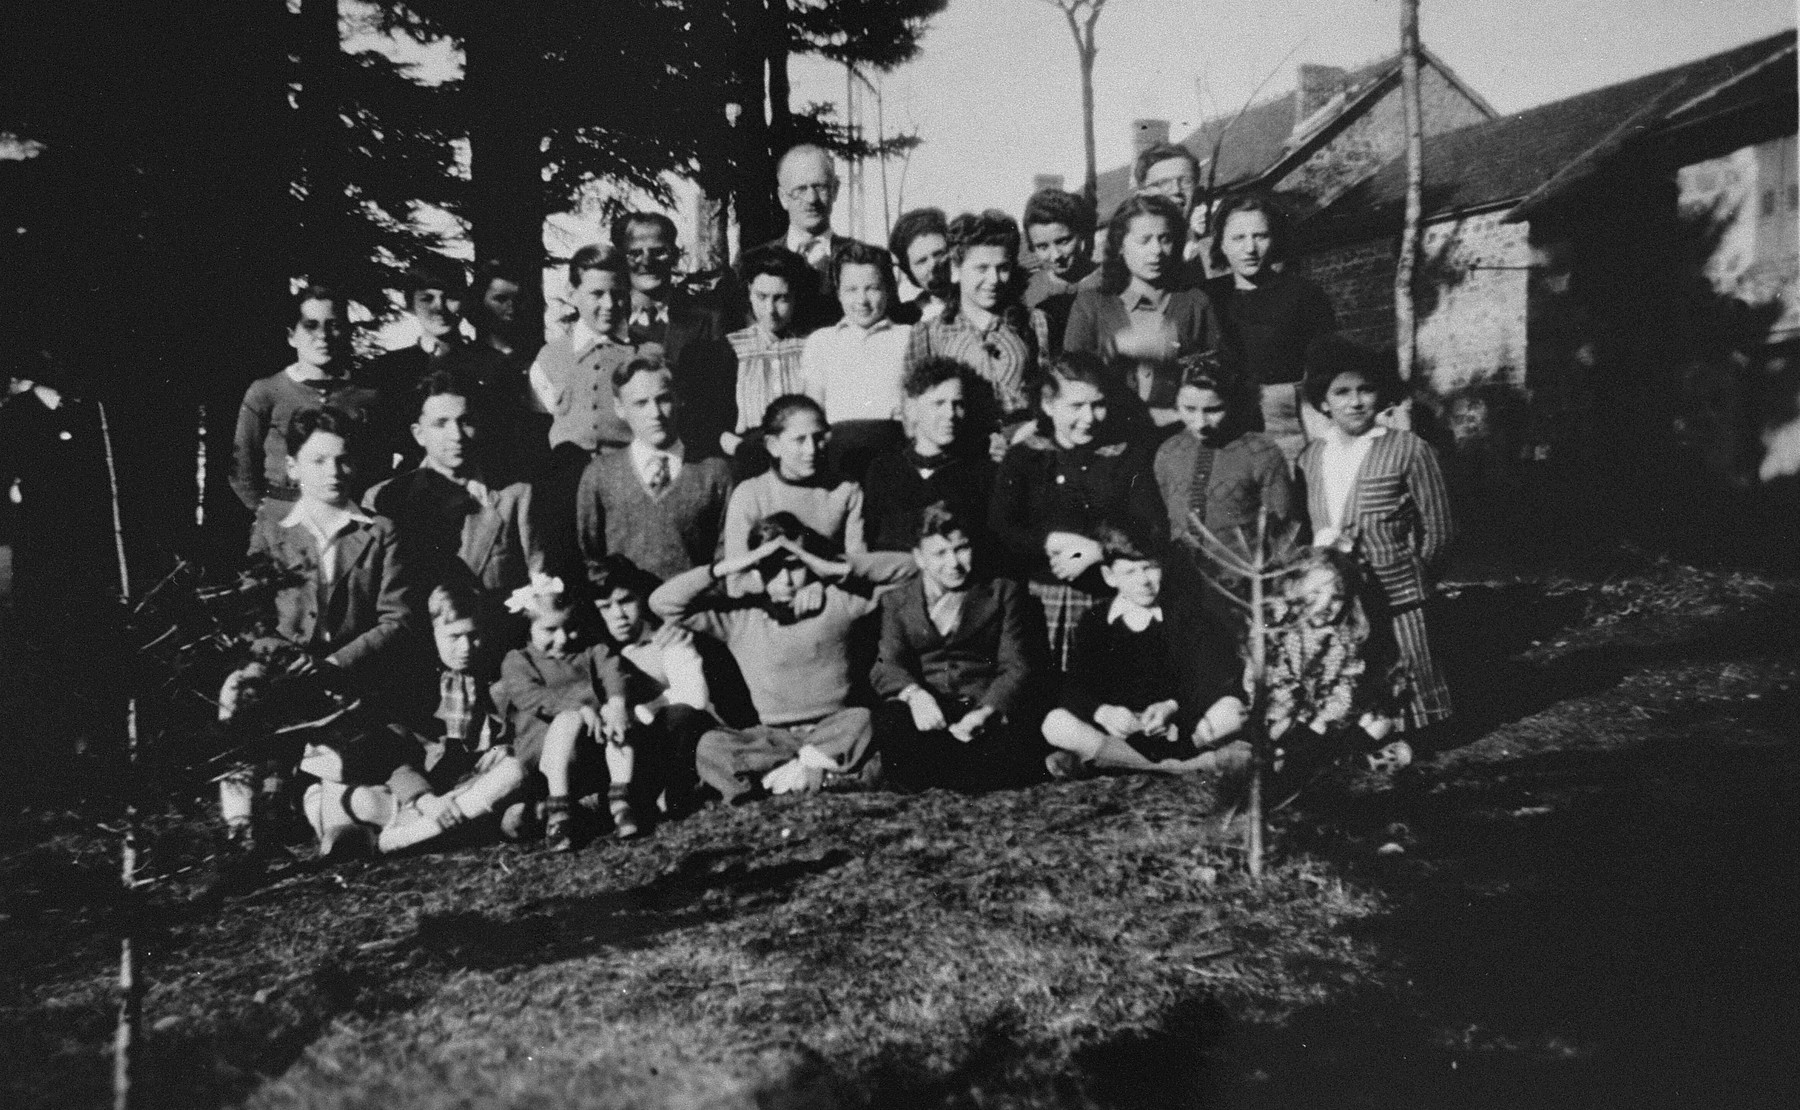 Group portrait of Jewish and non-Jewish refugee children sheltered in various public and private homes in Le Chambon-sur-Lignon during World War II with some of the French men and women who cared for them.  Among those pictured are: Pastor André Trocmé (top row, center wearing glasses), Daniel Trocmé (top row, right, partially hidden), Edouard Theis (top row, to the left of André Trocmé), Peter Feigl (third row from the front, second from the left), Amede Dutry (third row from the front, far left), Kurt Grossman (second row from the front, far left), Jean Speigel (second row from the front, second from the left), and Simone Fullenbaum (second row from the front, far right).